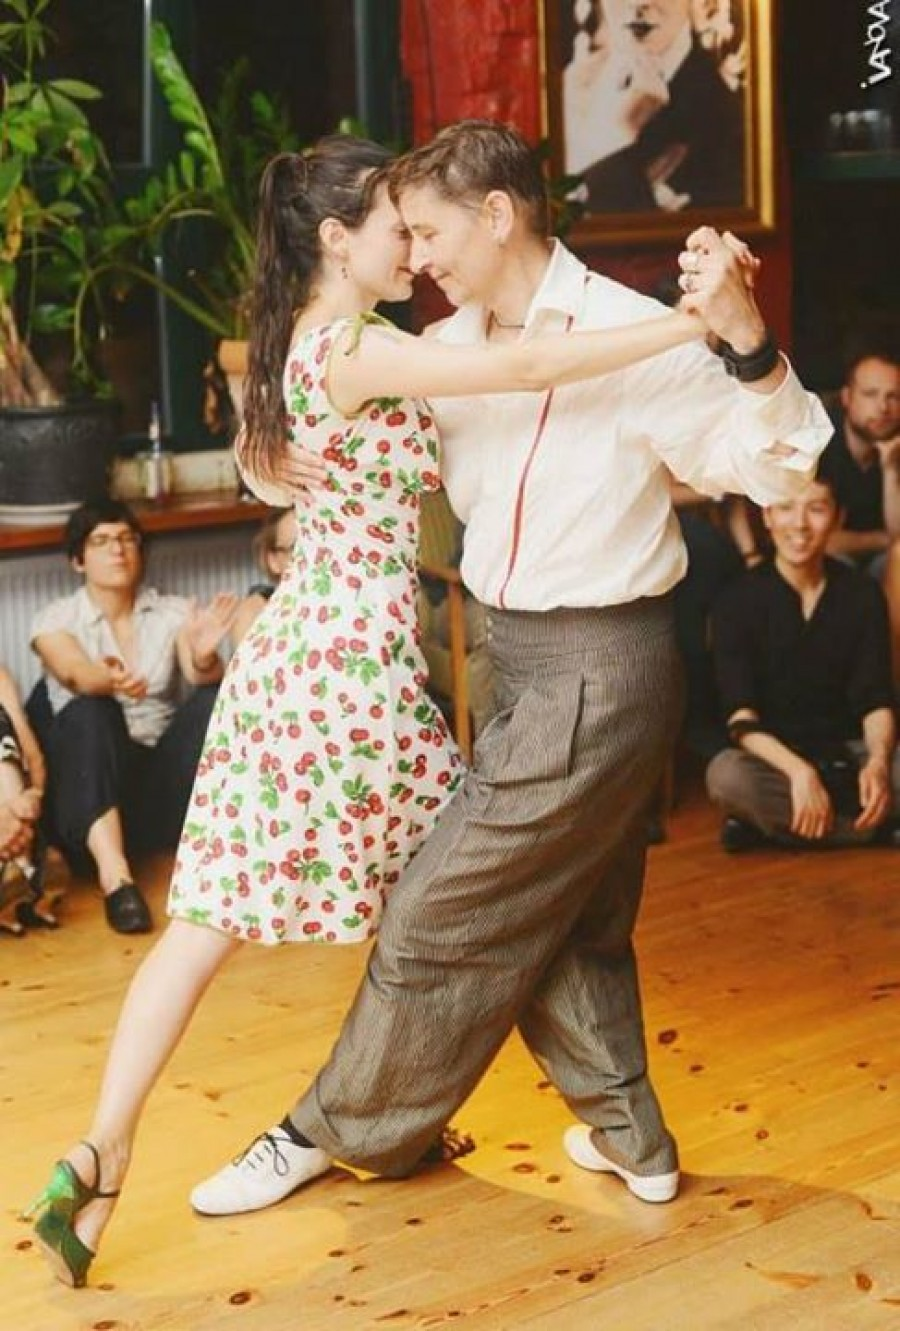 TANGO WORKSHOPS with ASTRID WEISKE